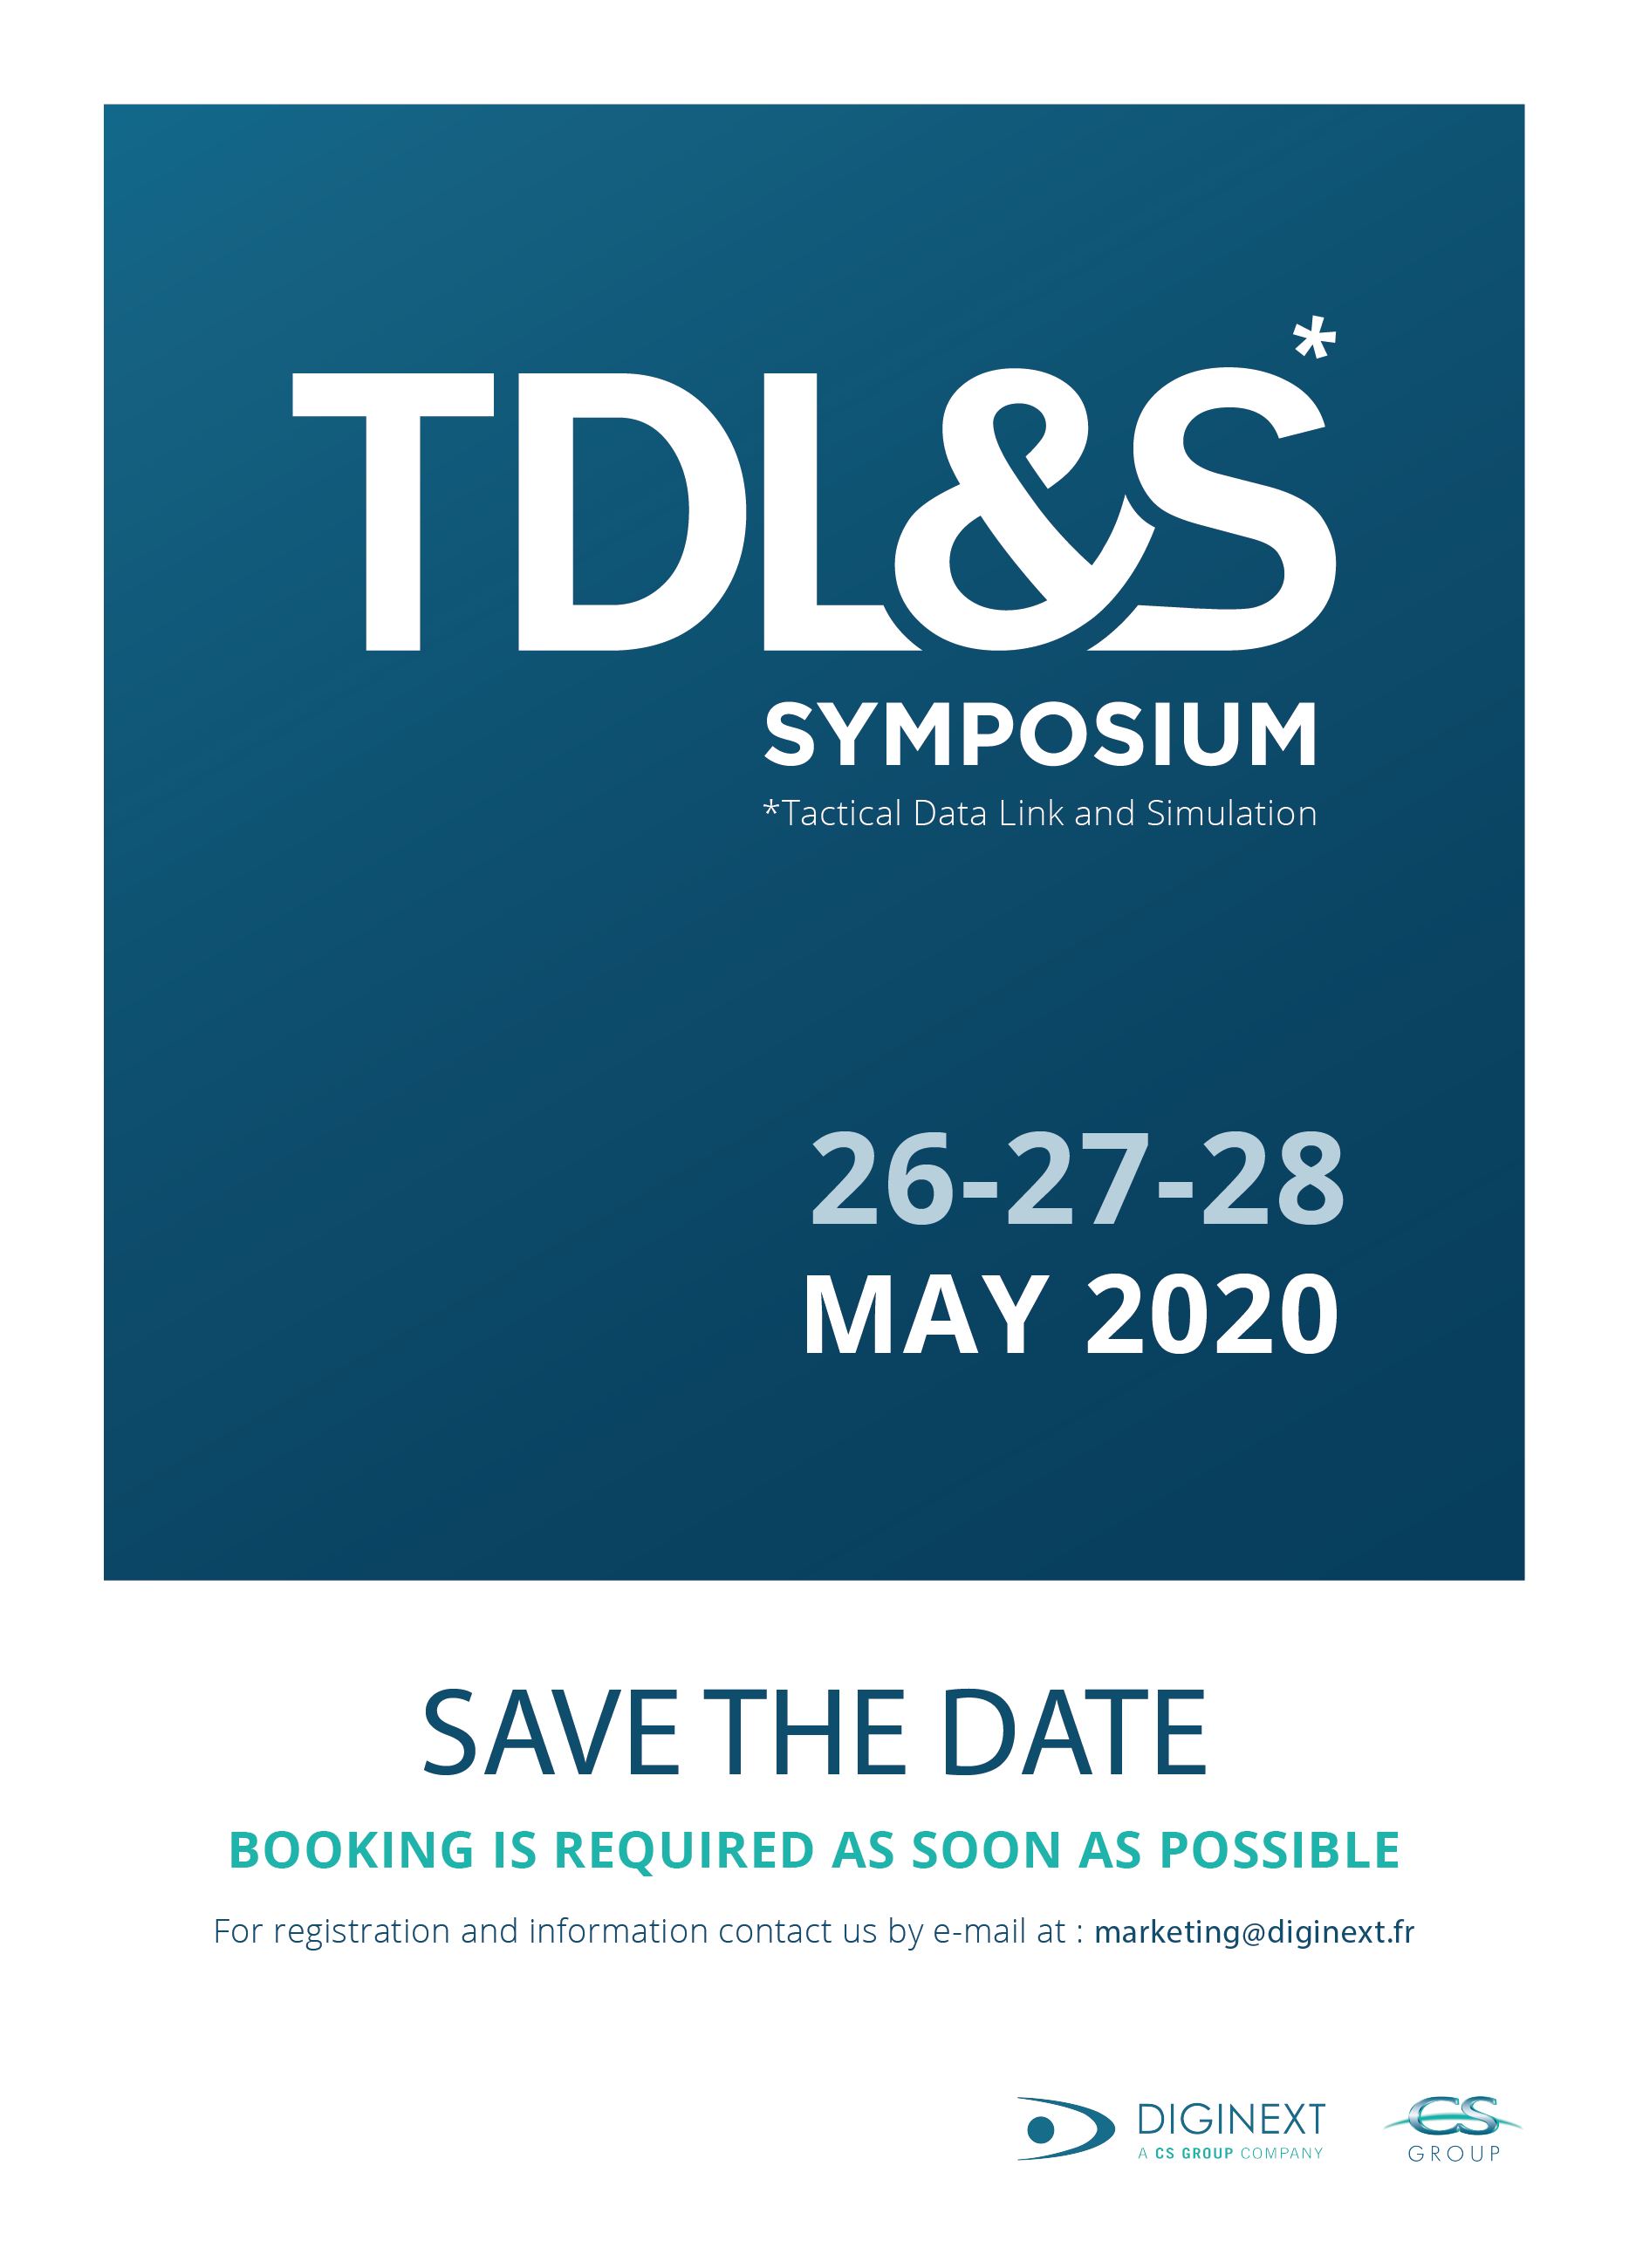 TDLS 2020 SAVE THE DATE